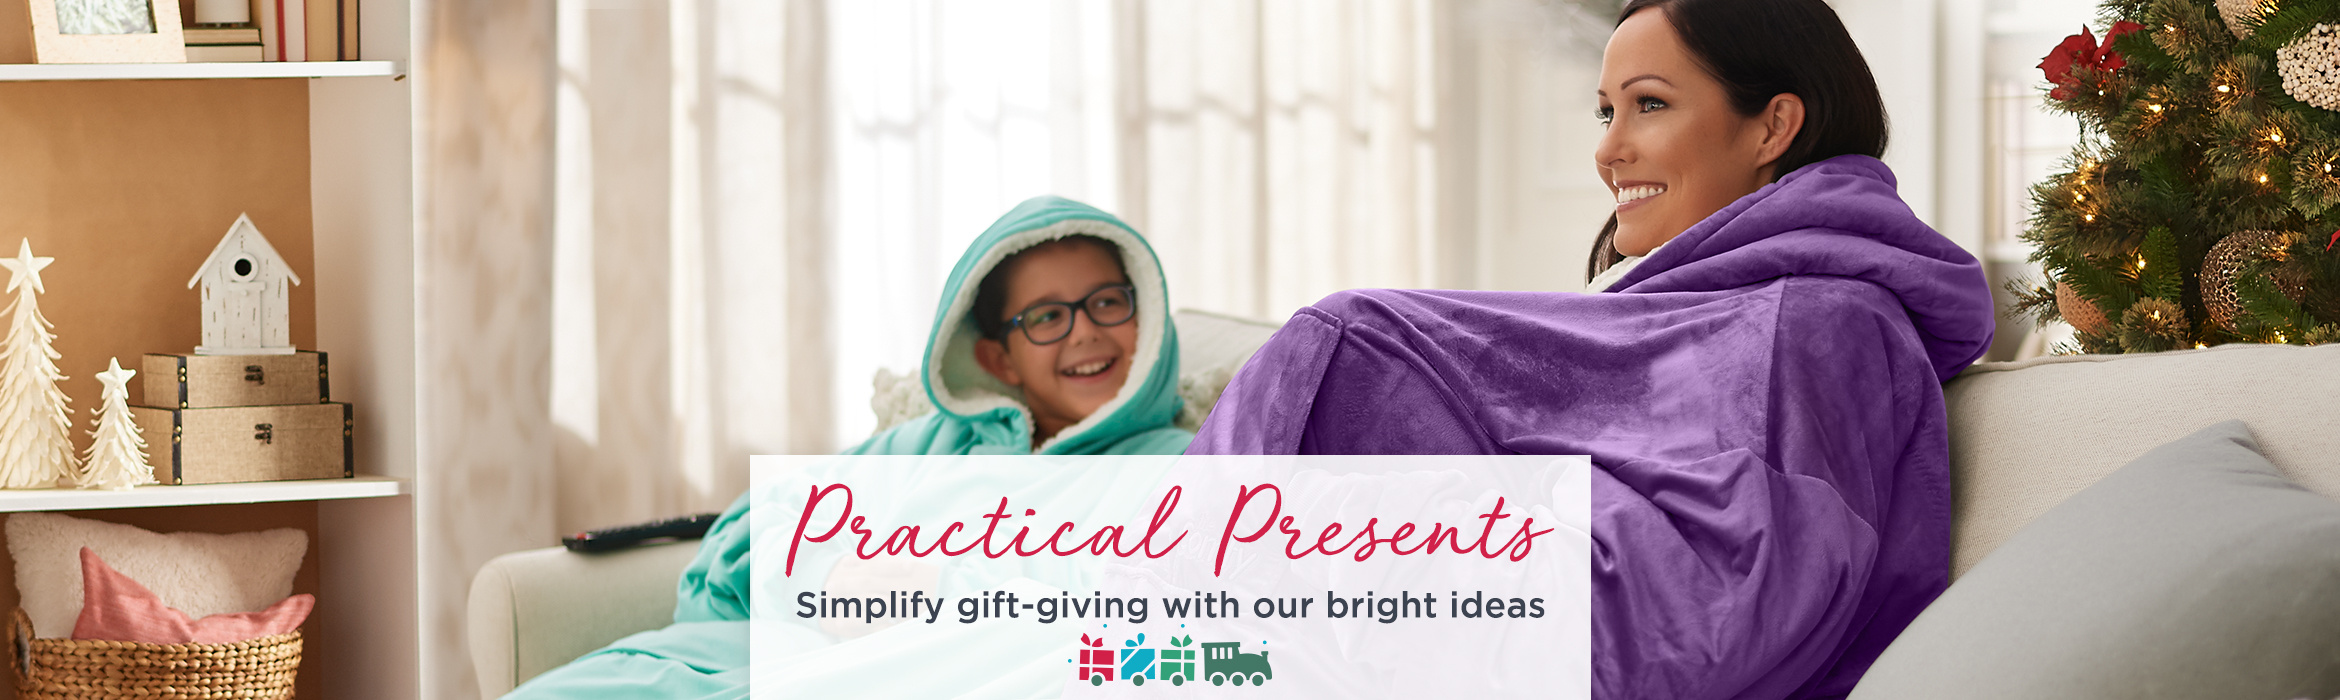 Practical Presents. Simplify gift-giving with our bright ideas